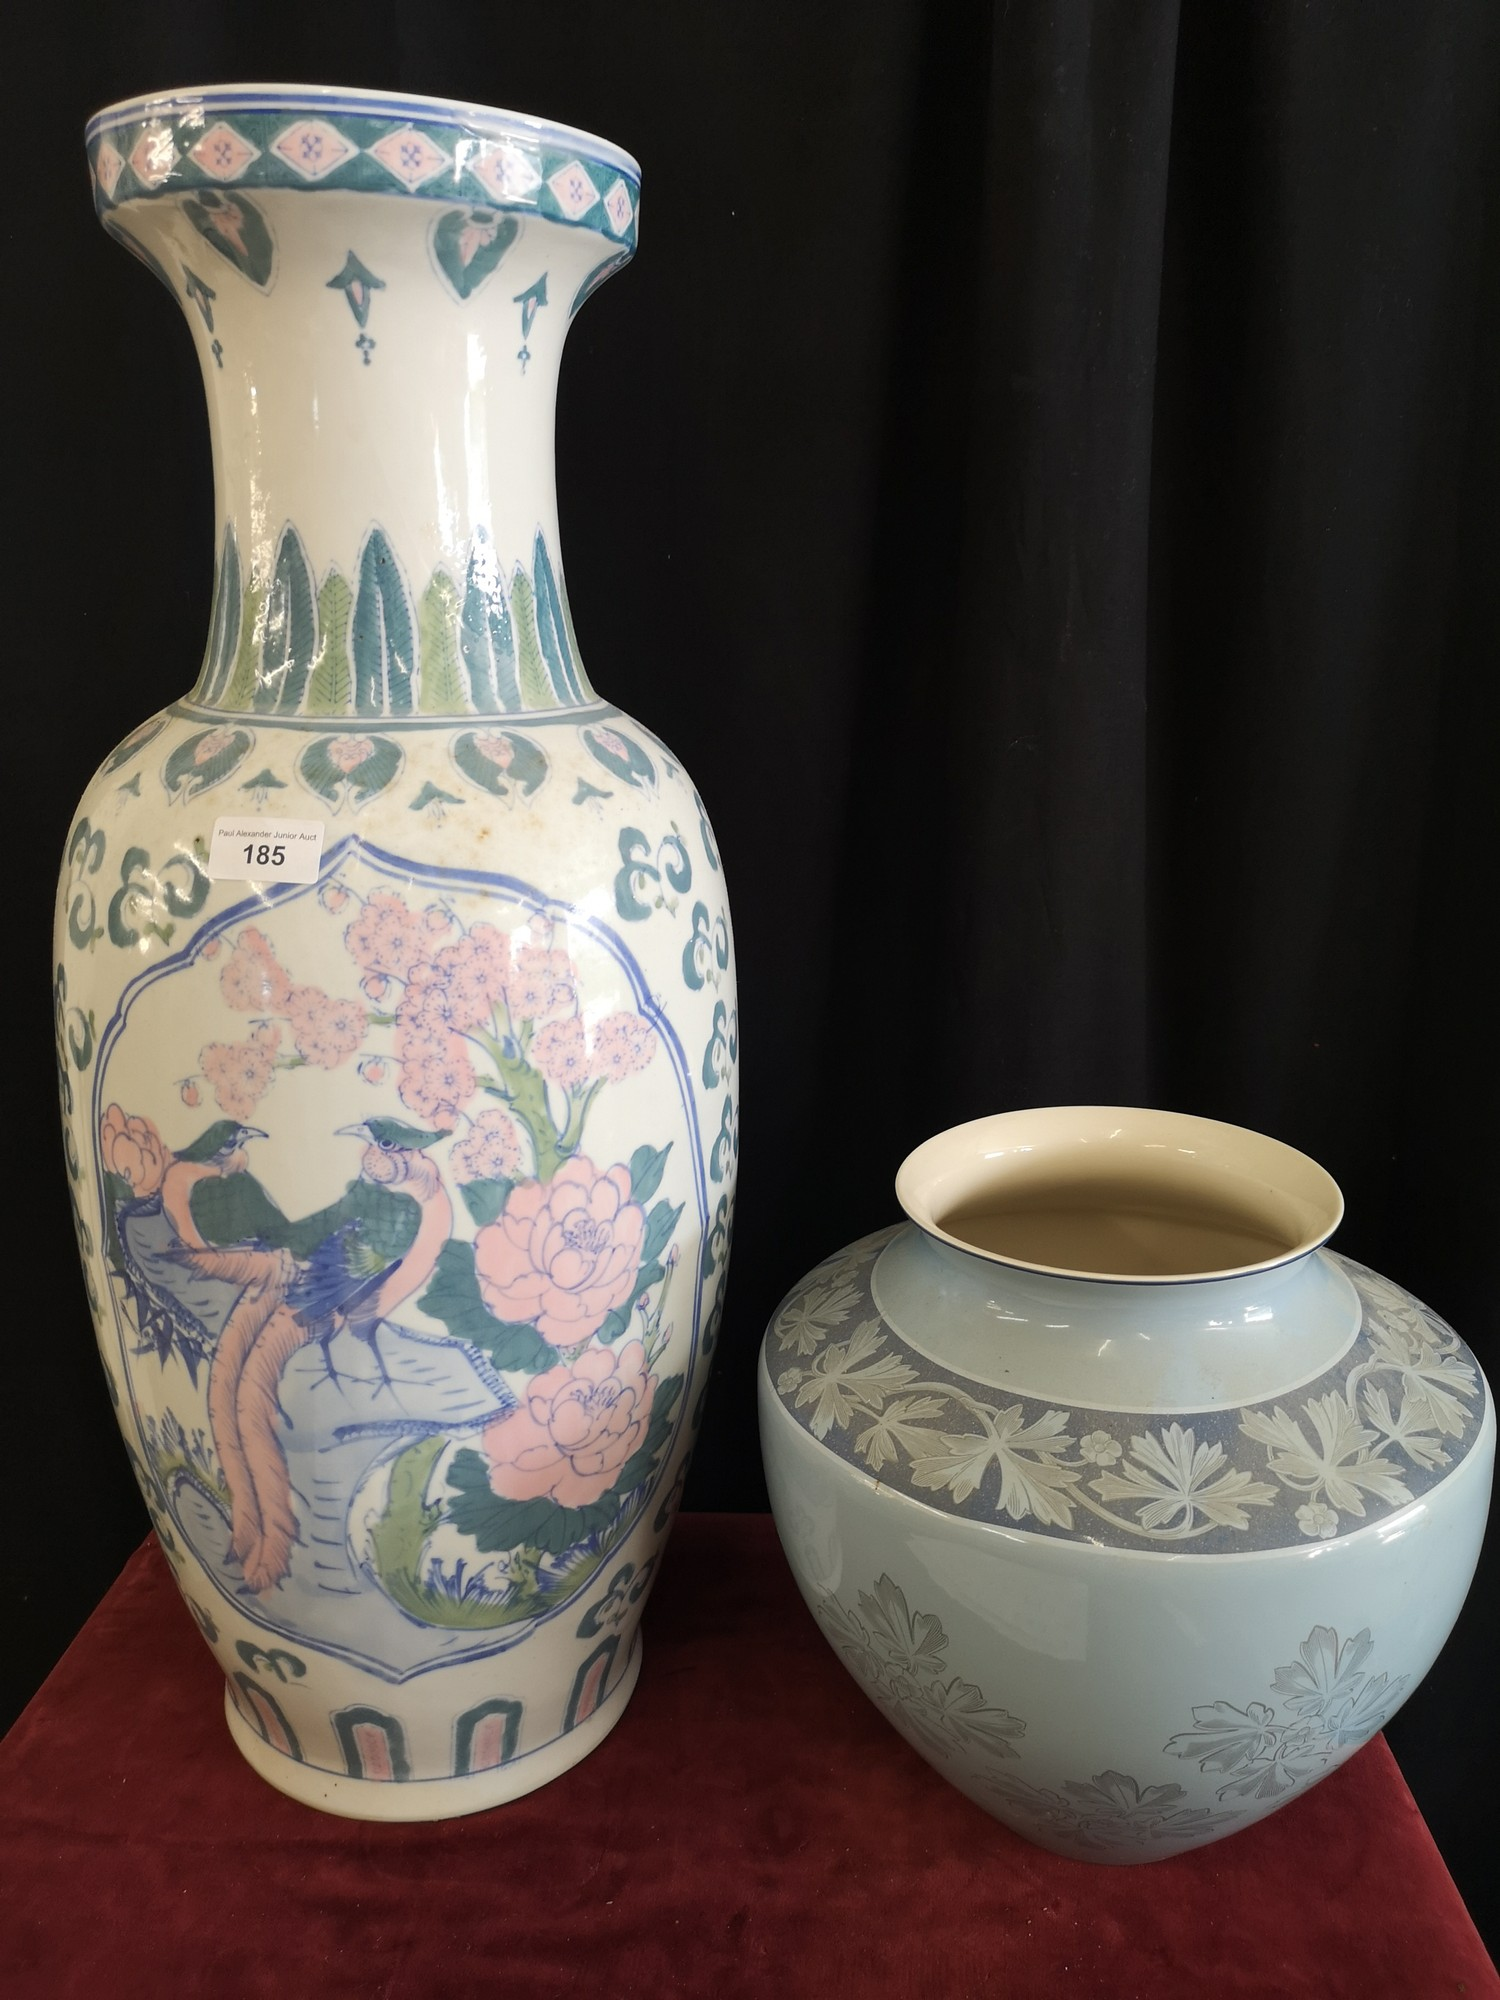 Large Oriental vase together with wedgewood vase both as found.